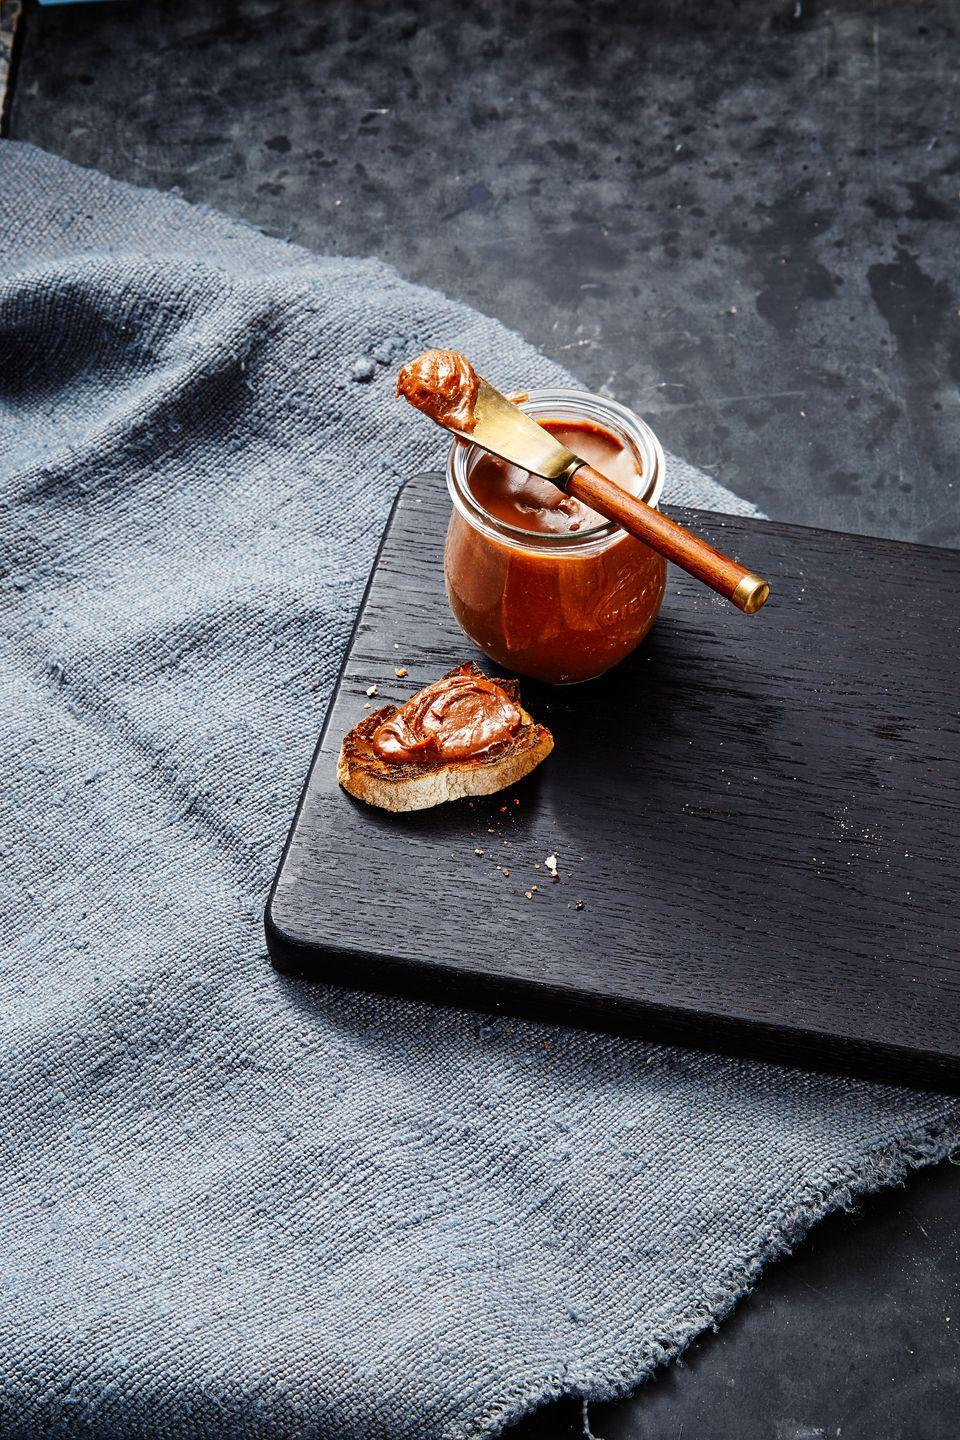 """<p>Turn any dessert into a chocolatey delight with easy homemade nutella, made with toasted hazelnuts and chocolate.</p><p><a href=""""https://www.goodhousekeeping.com/food-recipes/a36077439/homemade-nutella-recipe/"""" rel=""""nofollow noopener"""" target=""""_blank"""" data-ylk=""""slk:Get the recipe for Homemade Nutella »"""" class=""""link rapid-noclick-resp""""><em>Get the recipe for Homemade Nutella »</em></a></p>"""